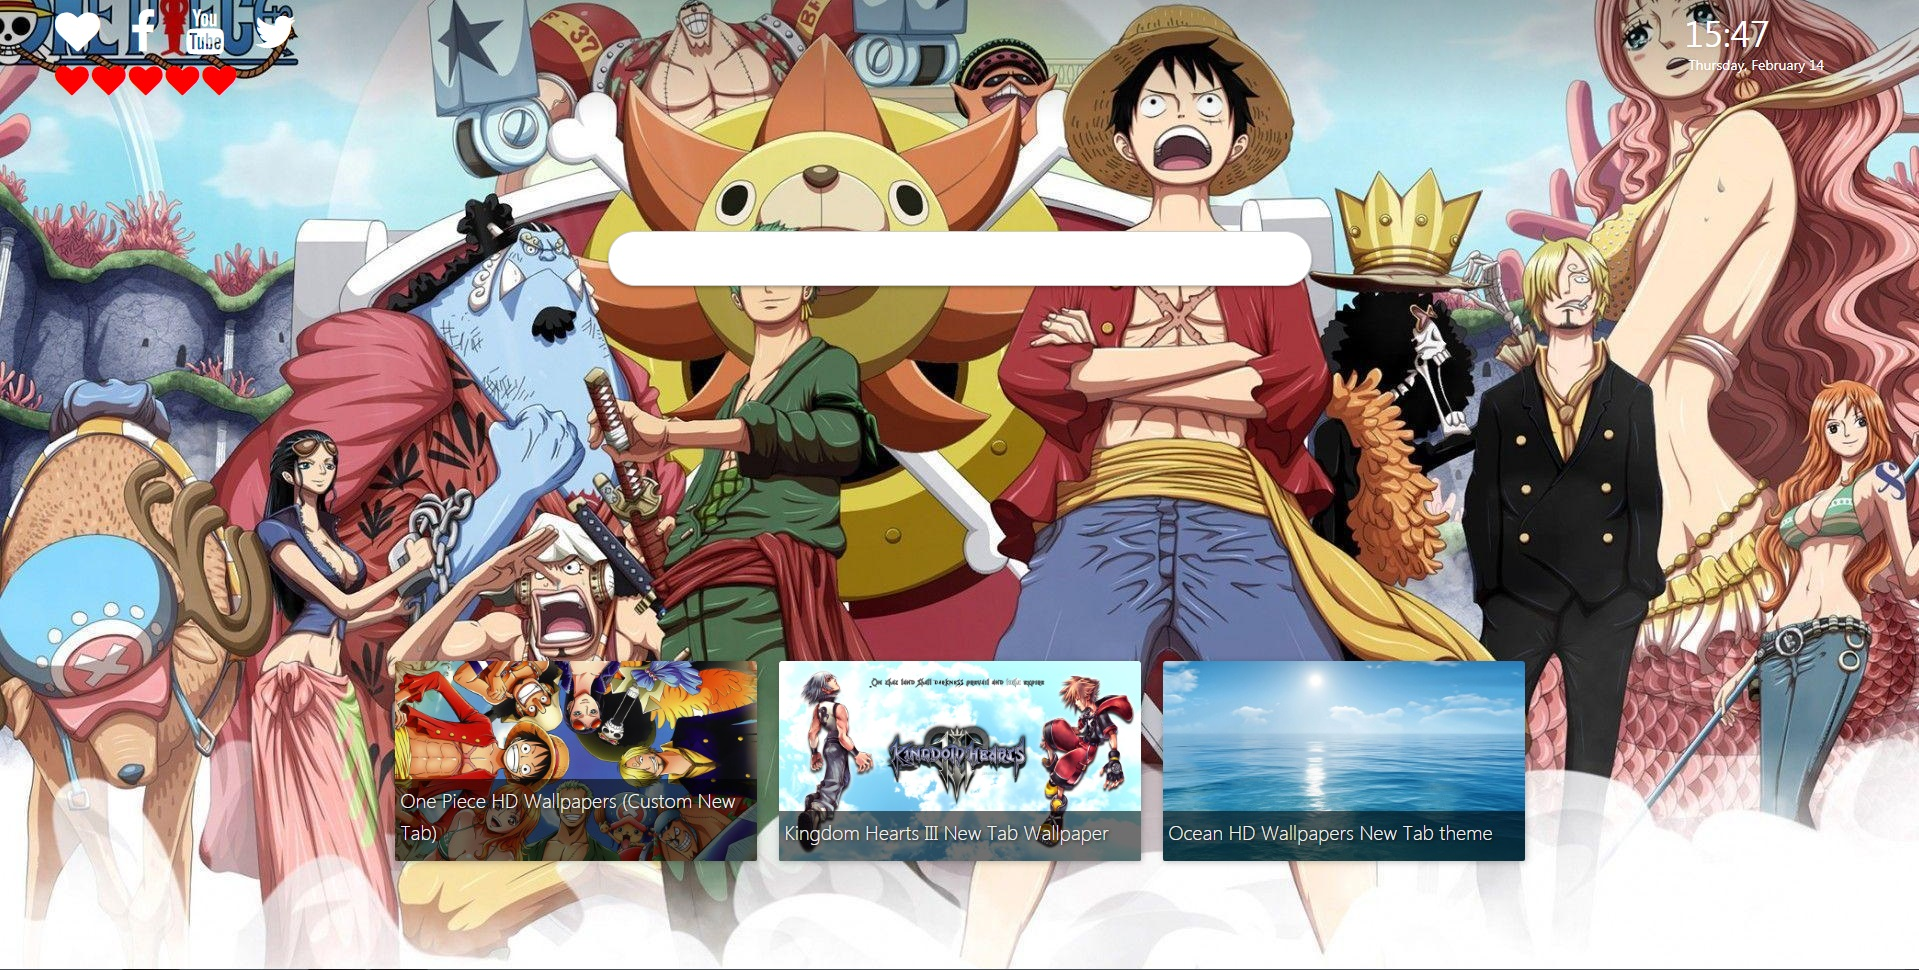 8k uhd tv 16:9 ultra high definition 2160p 1440p 1080p 900p 720p. One Piece Wallpapers 4k Hd One Piece Backgrounds On Wallpaperbat